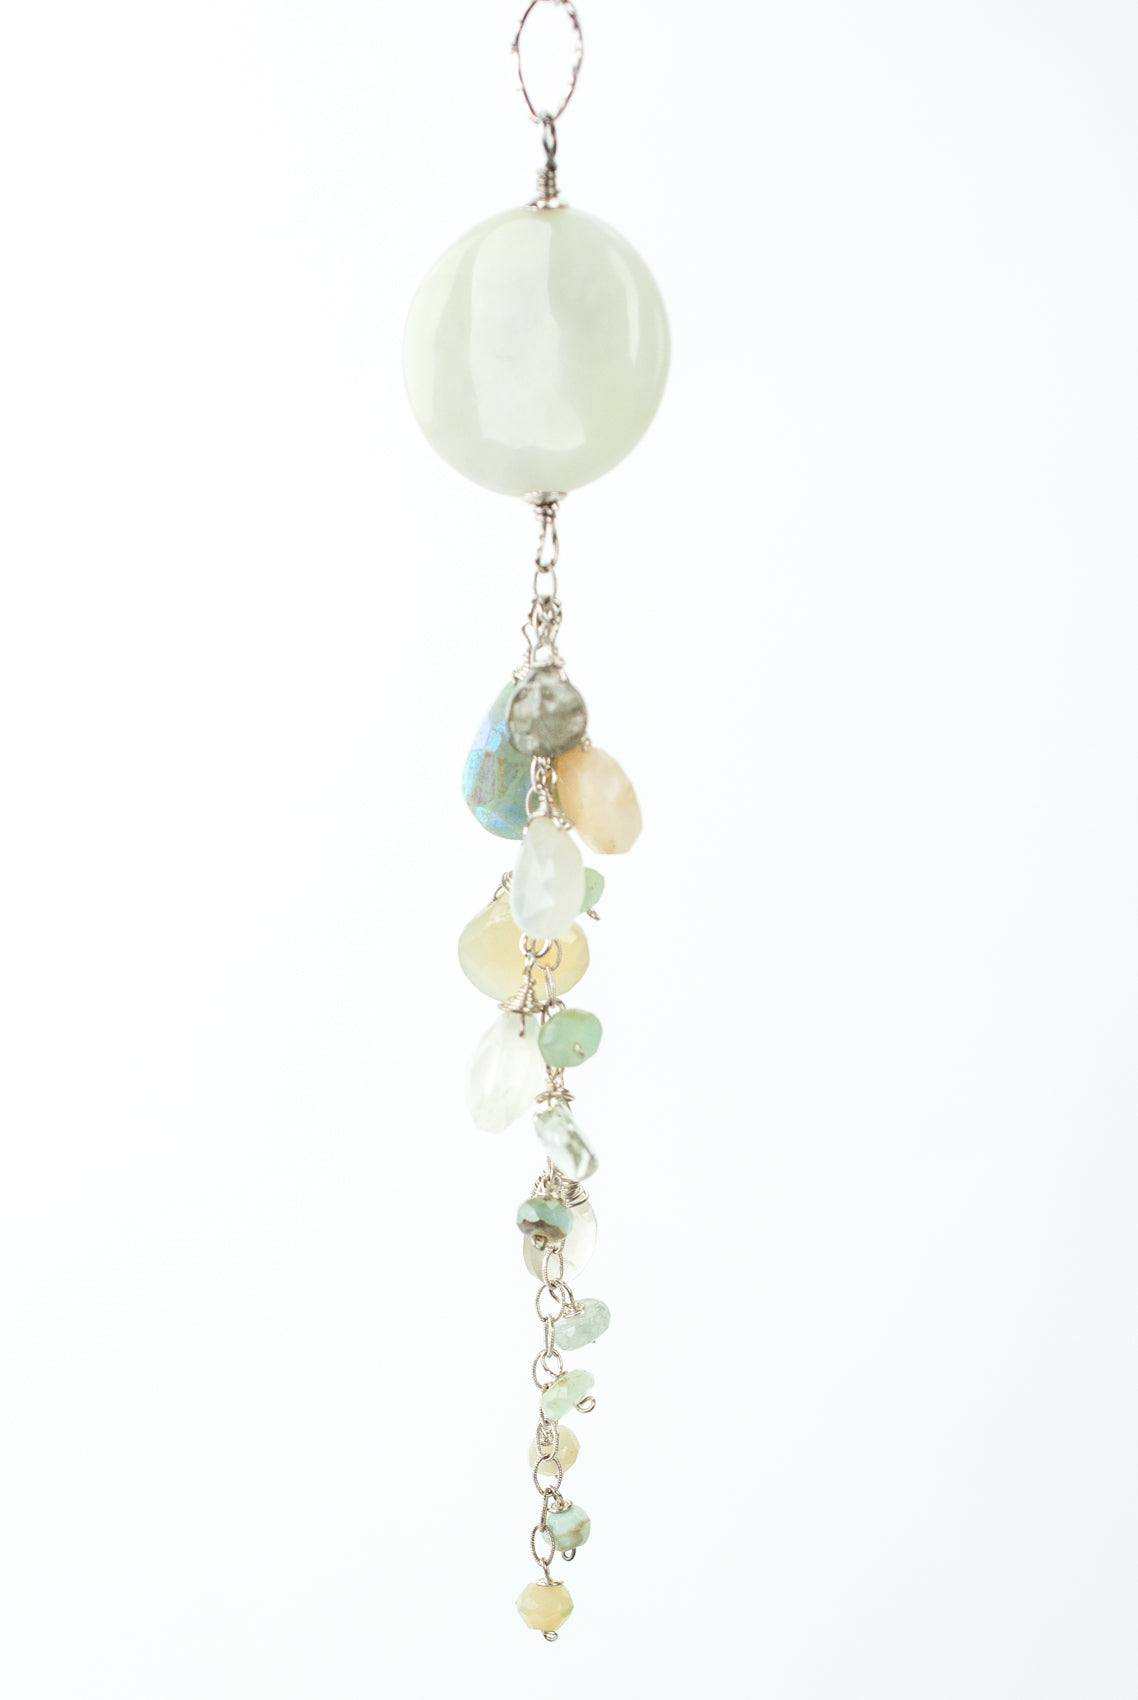 "One of a Kind 22-24"" Prehnite, Moonstone, Jasper Cluster Focal Necklace"